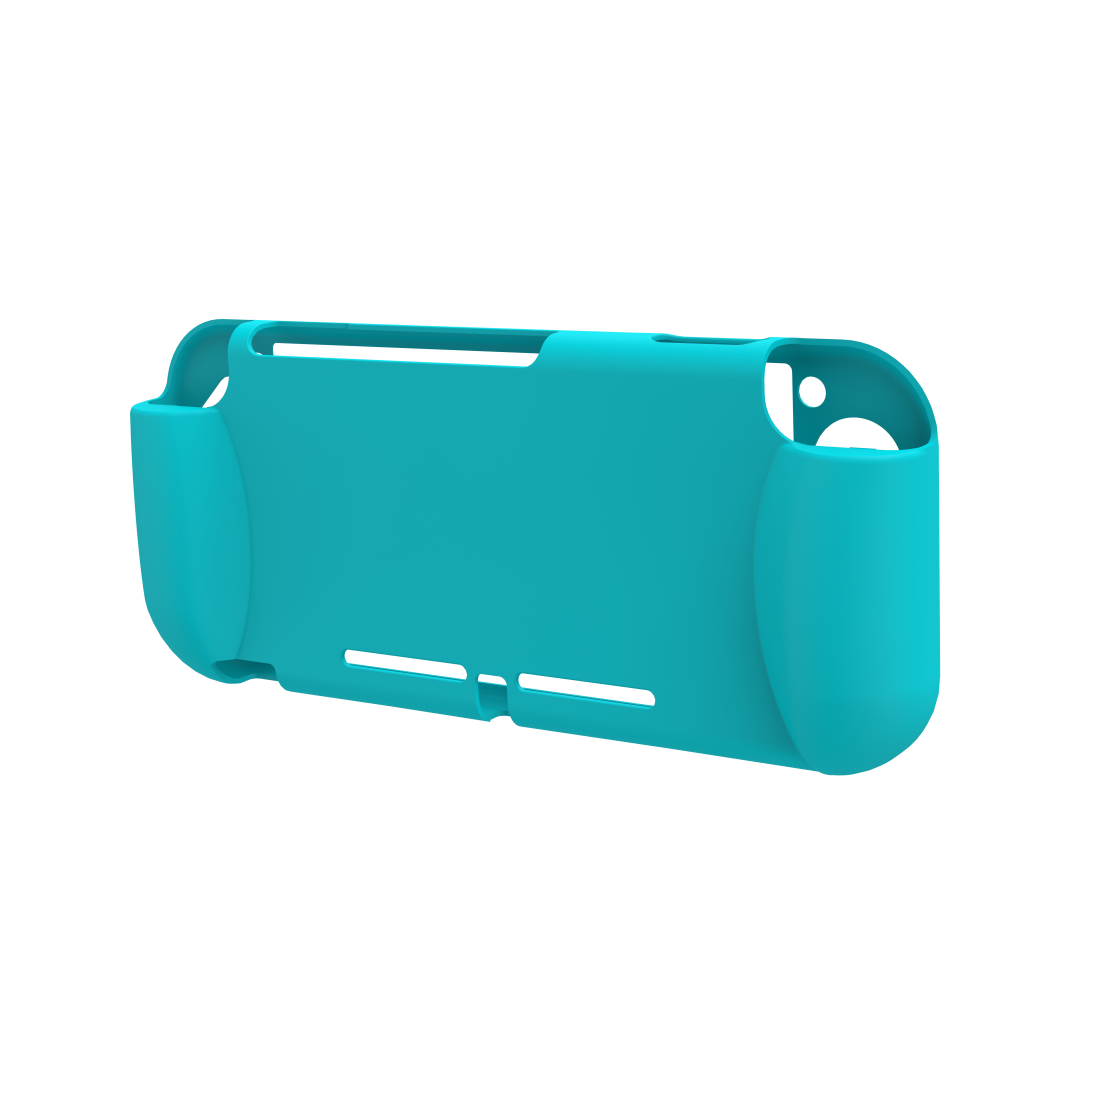 abx2 High-Res Image 2 - Hama, Grip Protective Sleeve for Nintendo Switch Lite, turquoise